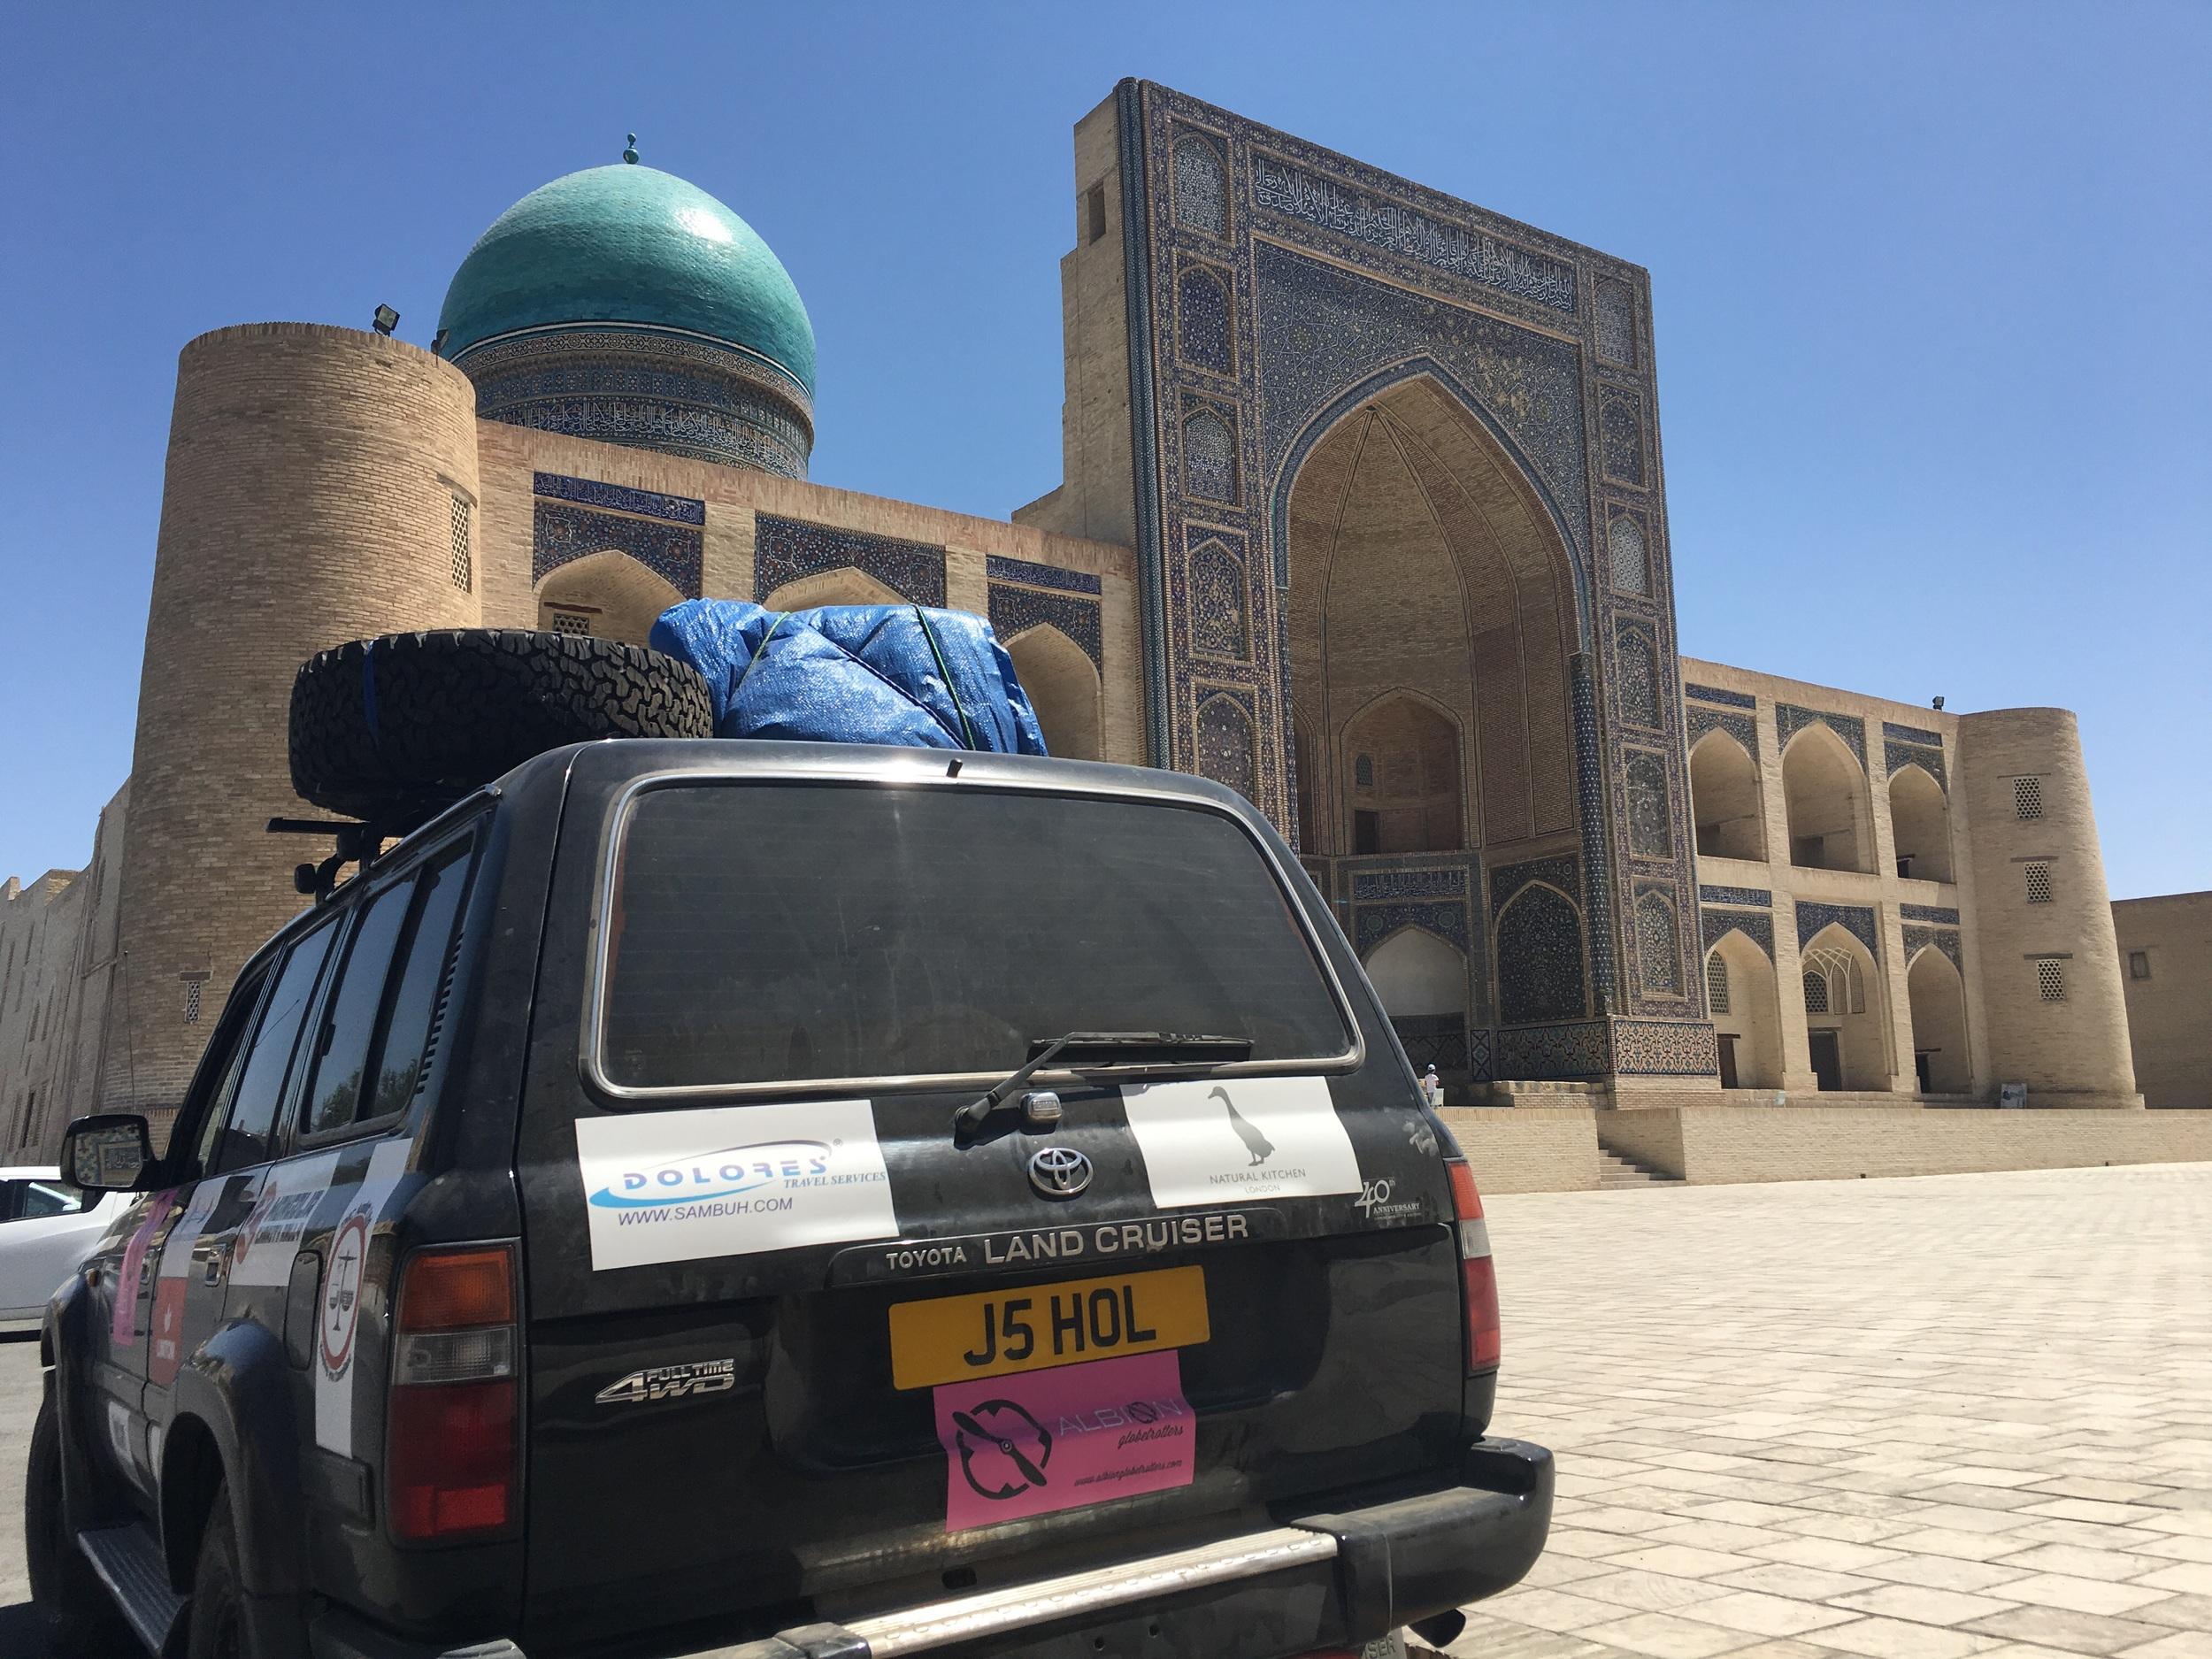 Parked in front of the madrassa in Bukhara.